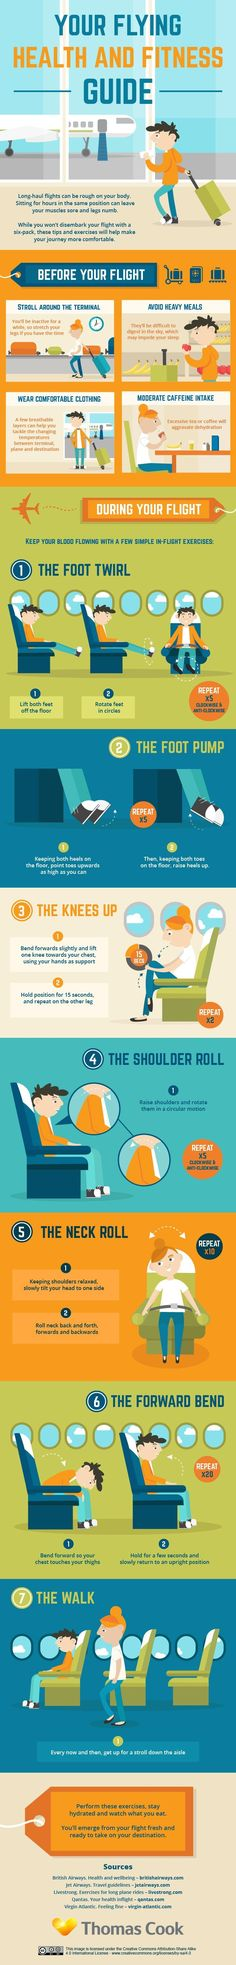 Feeling Stuck on a Plane? Stay Loose With These Exercises #infographic